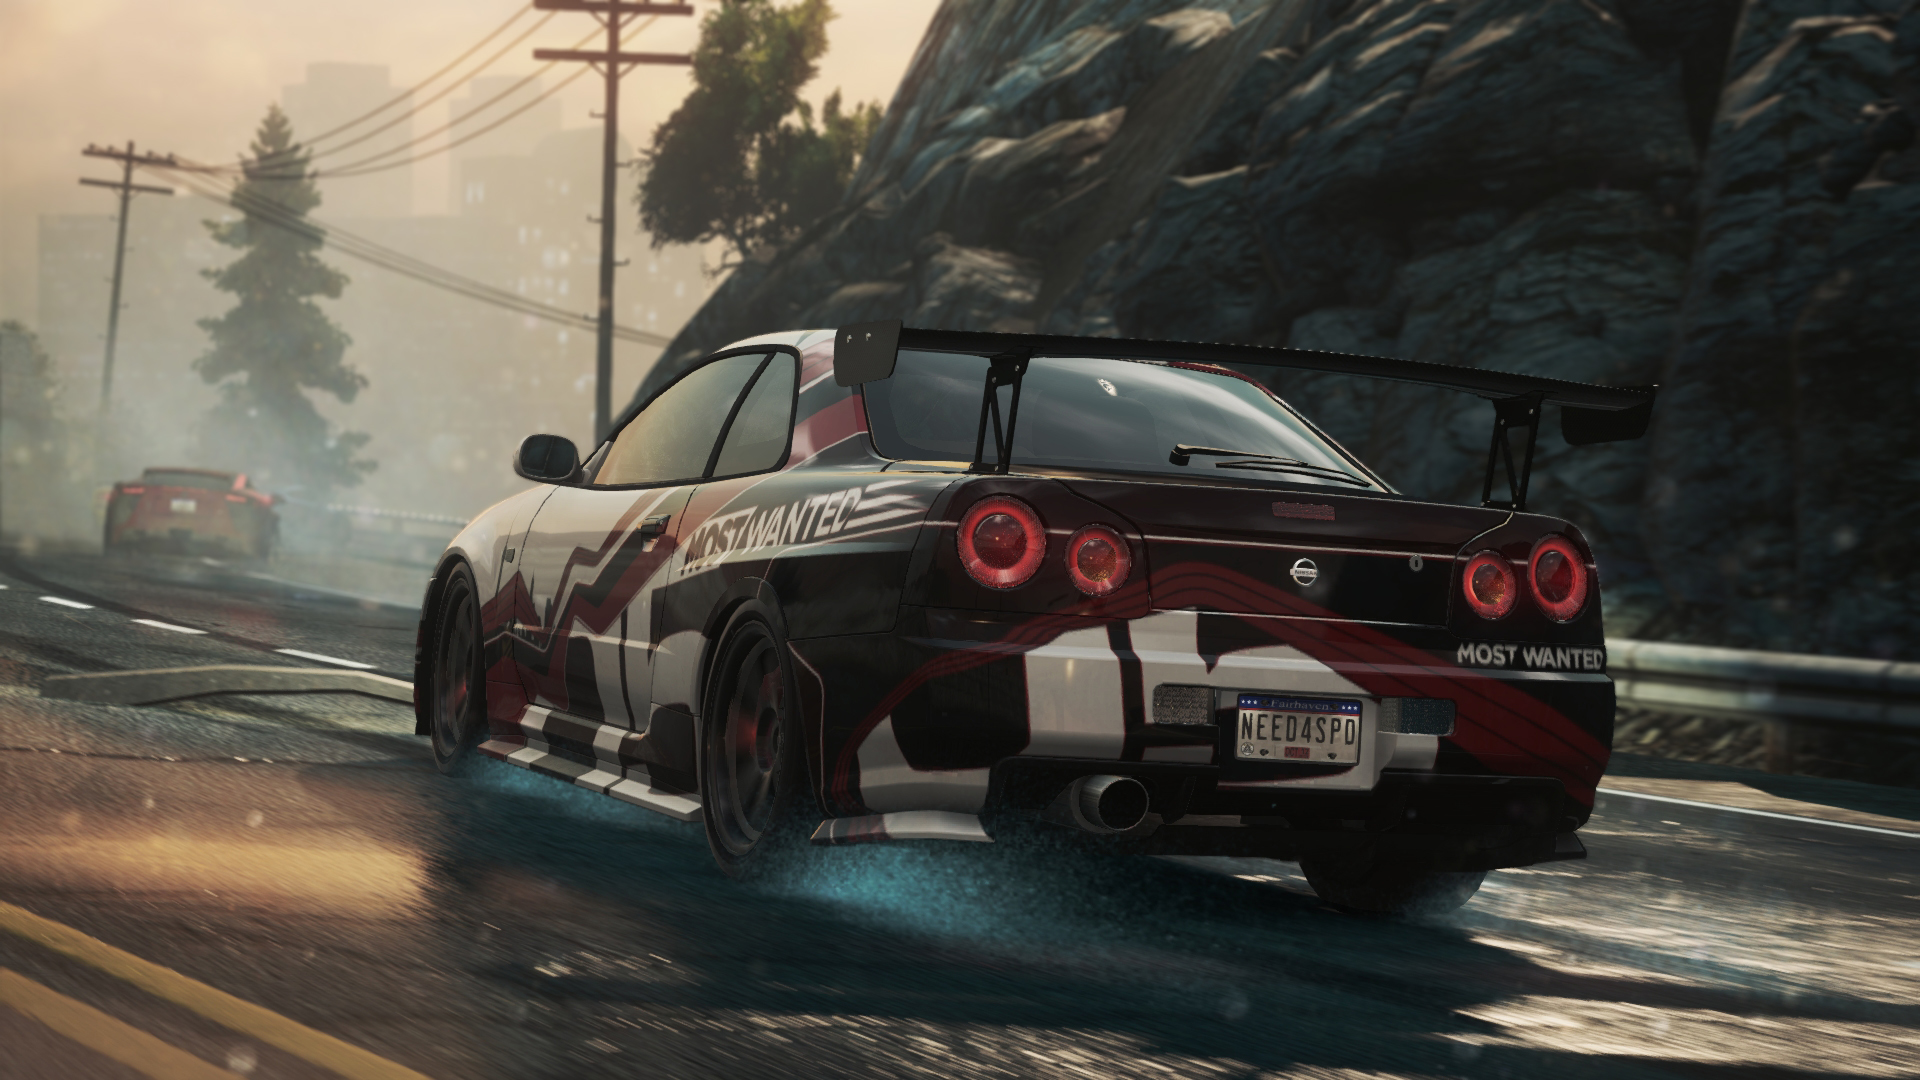 Nfs Most Wanted 2012 Cars Wallpapers Wallpaper Need For Speed Nissan Skyline Gt R Most